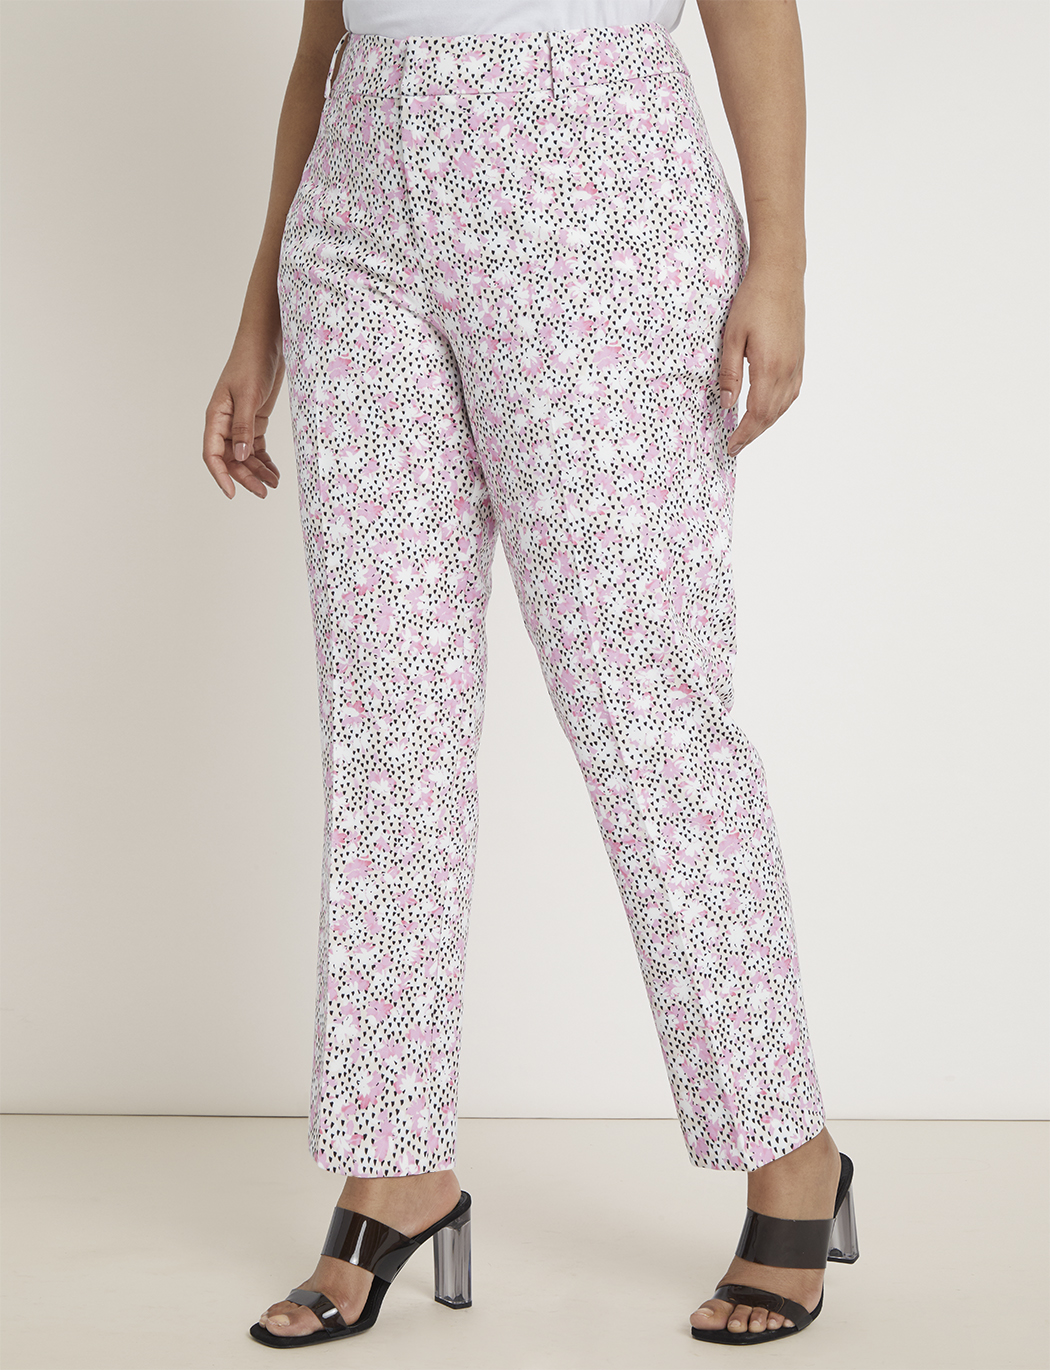 Kady Fit Printed Trouser